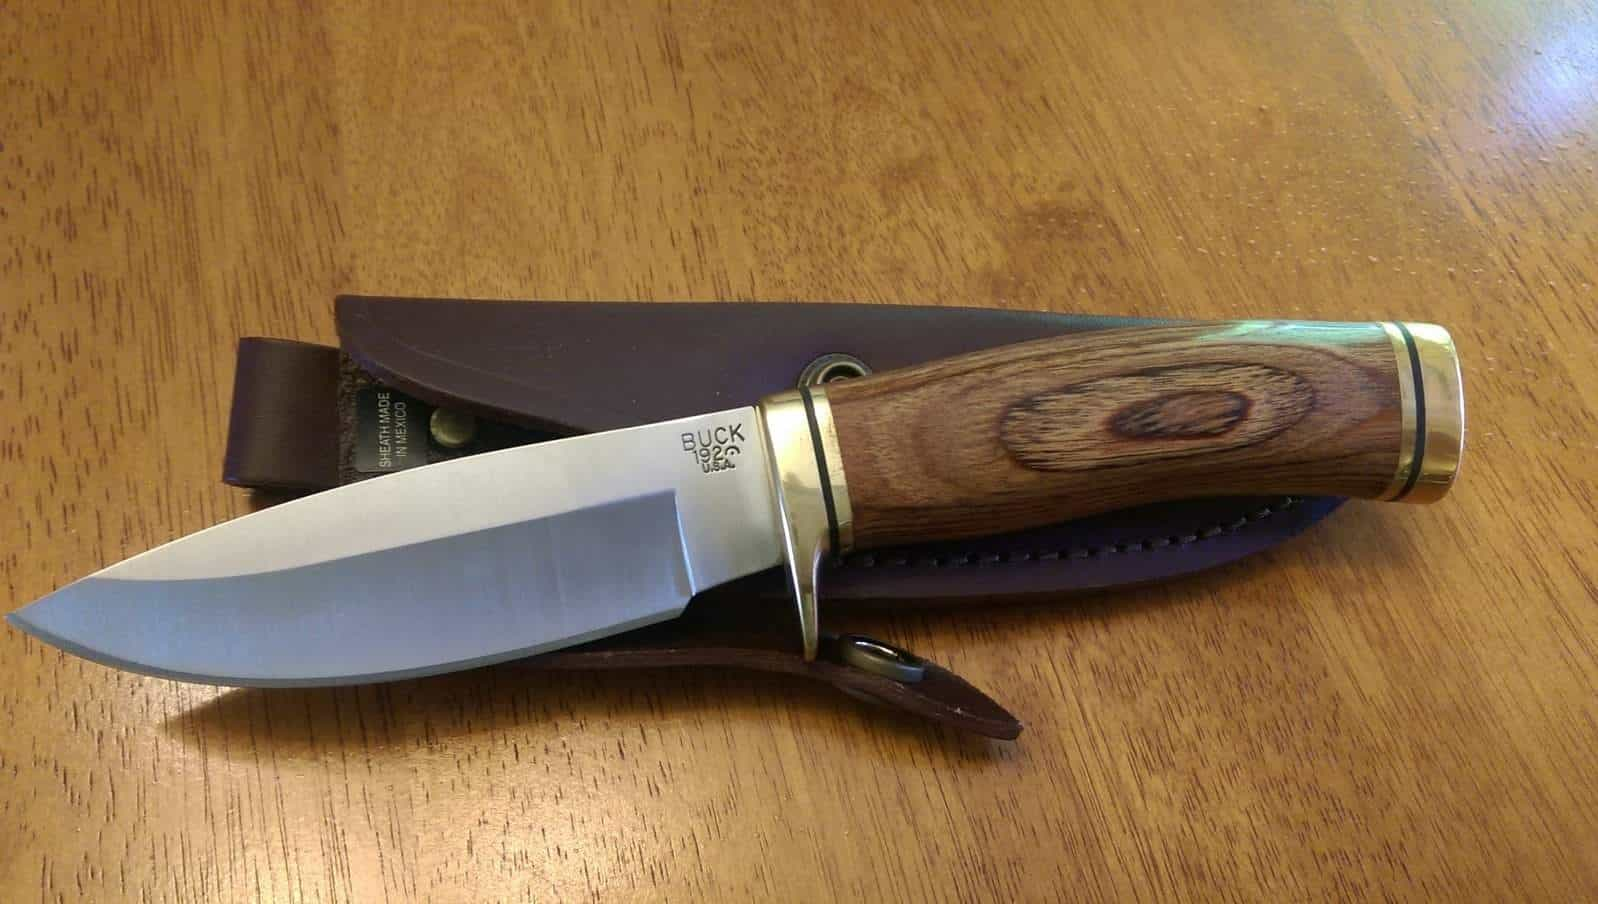 Buck 192BR Vanguard Fixed Blade Knife